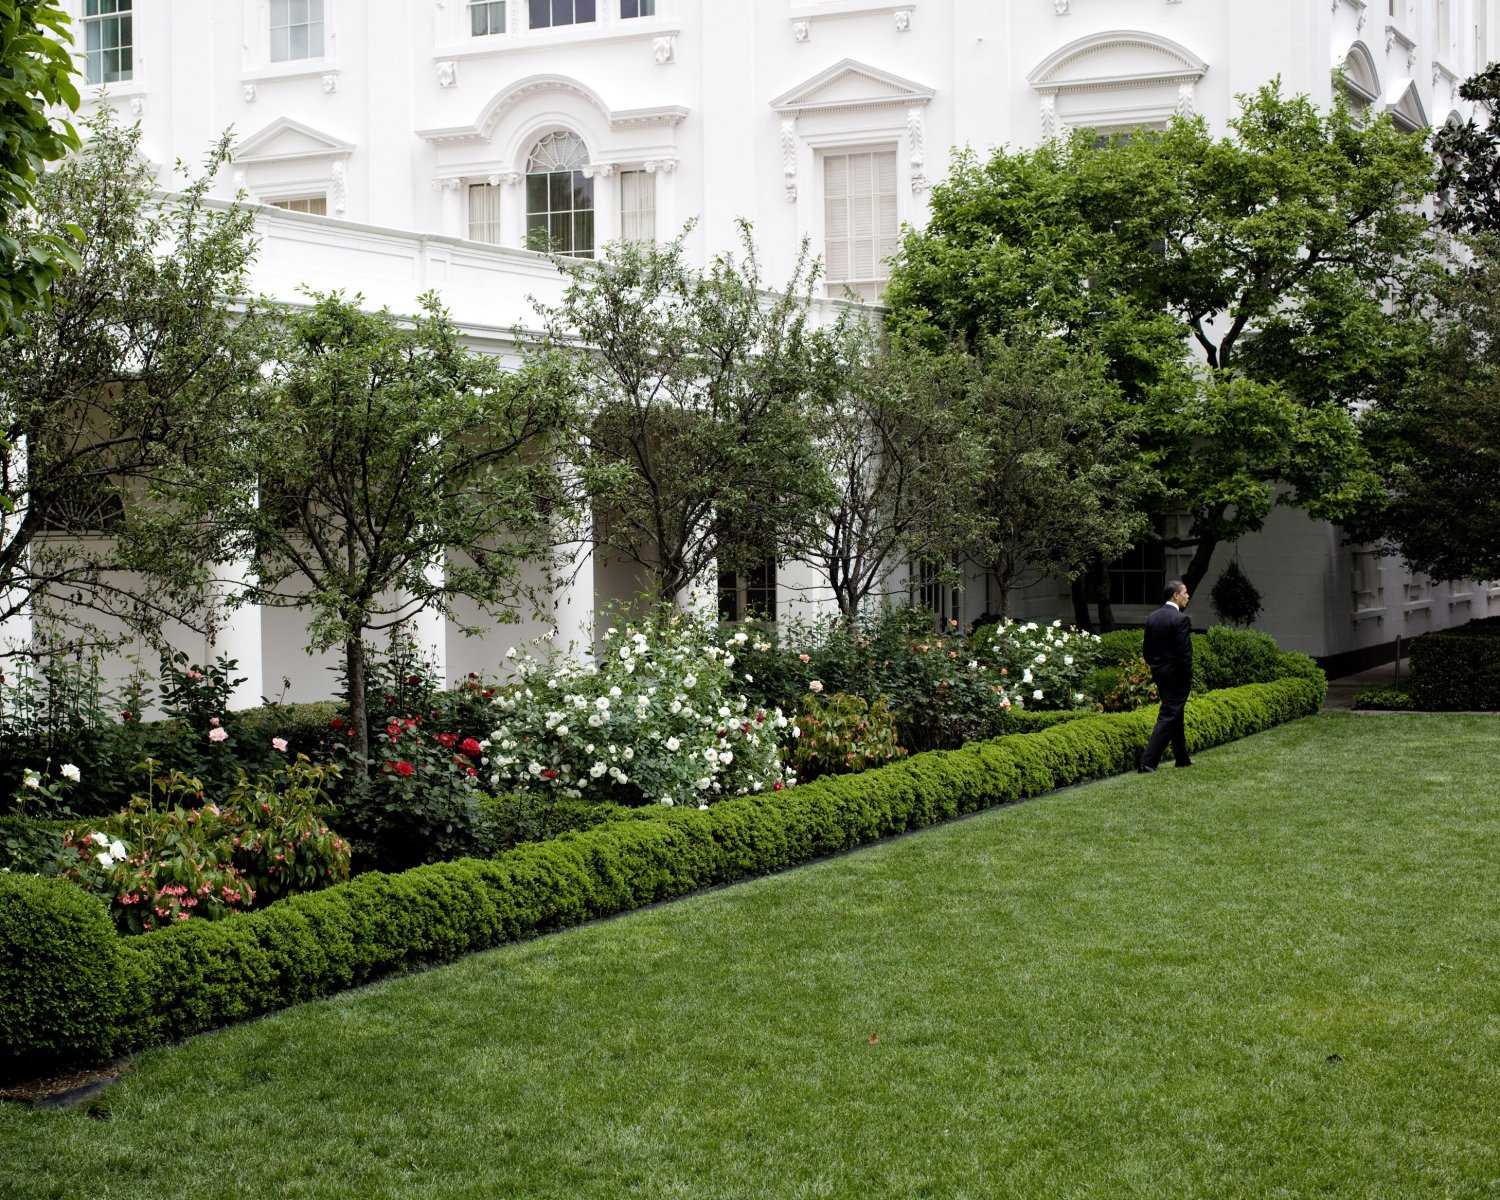 BARACK OBAMA STROLLS THROUGH WHITE HOUSE ROSE GARDEN IN 2009 8X10 PHOTO (ZY-626)